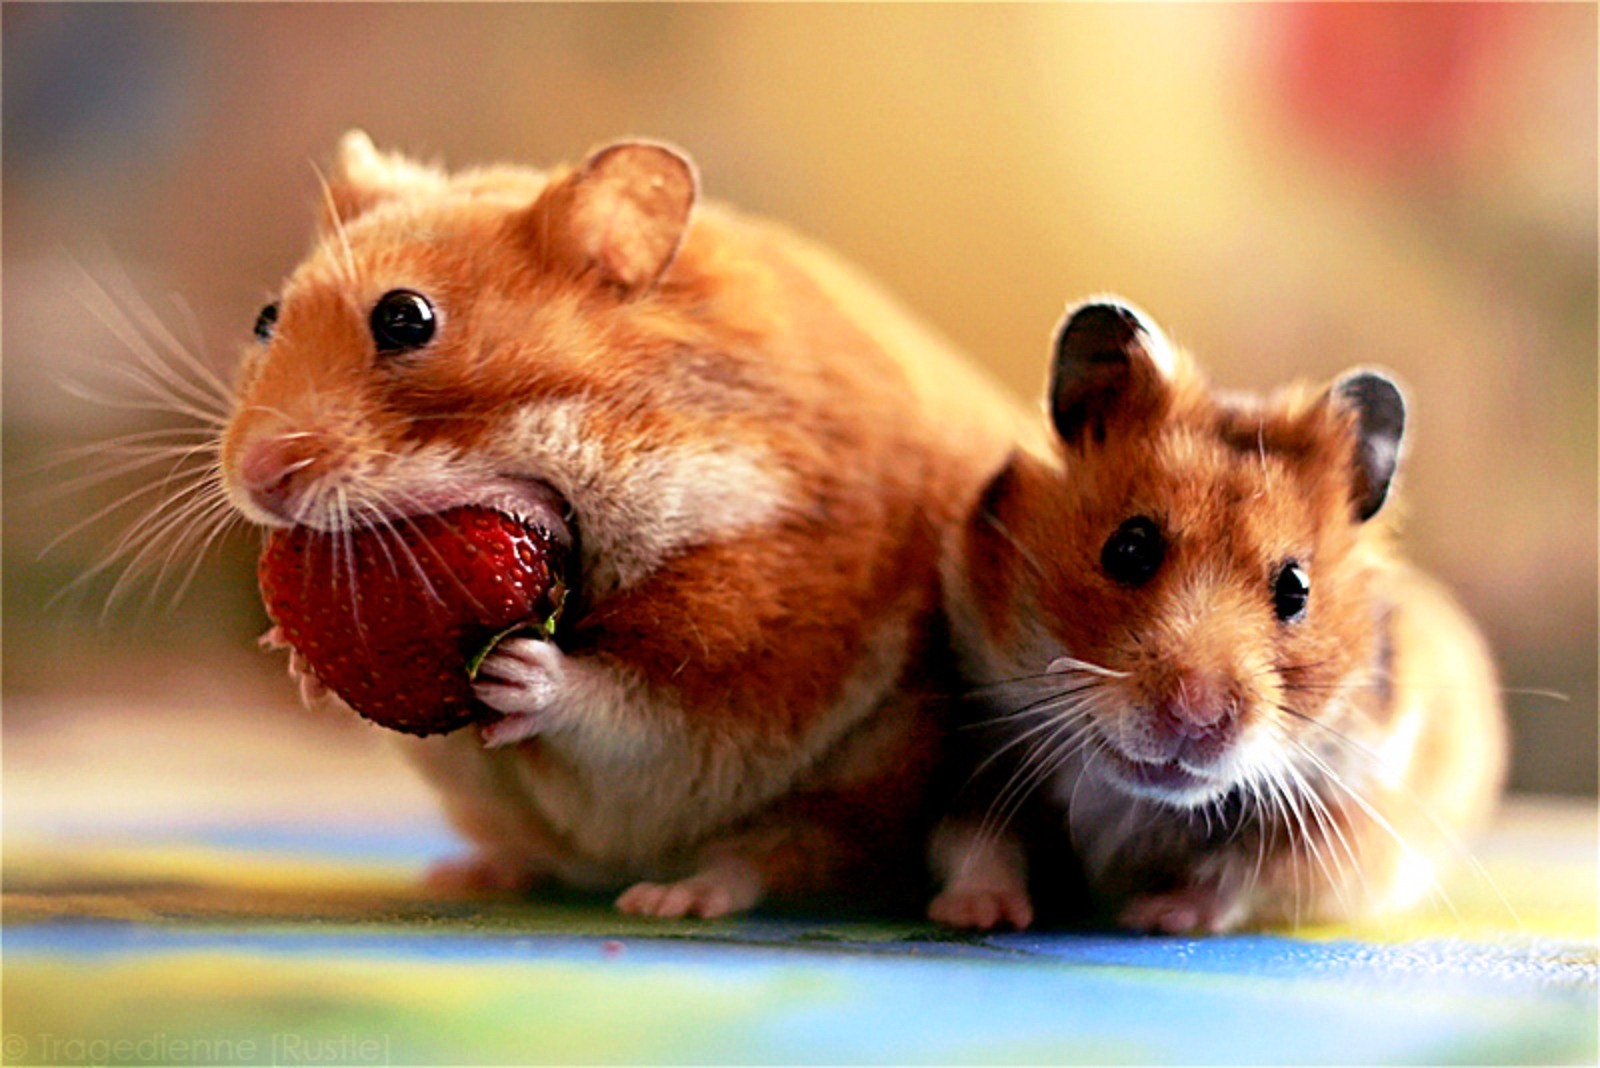 Cute Pet Animals Hd Wallpapers Hamster Vintage Style Funny Wallpaper Free Wallpaper